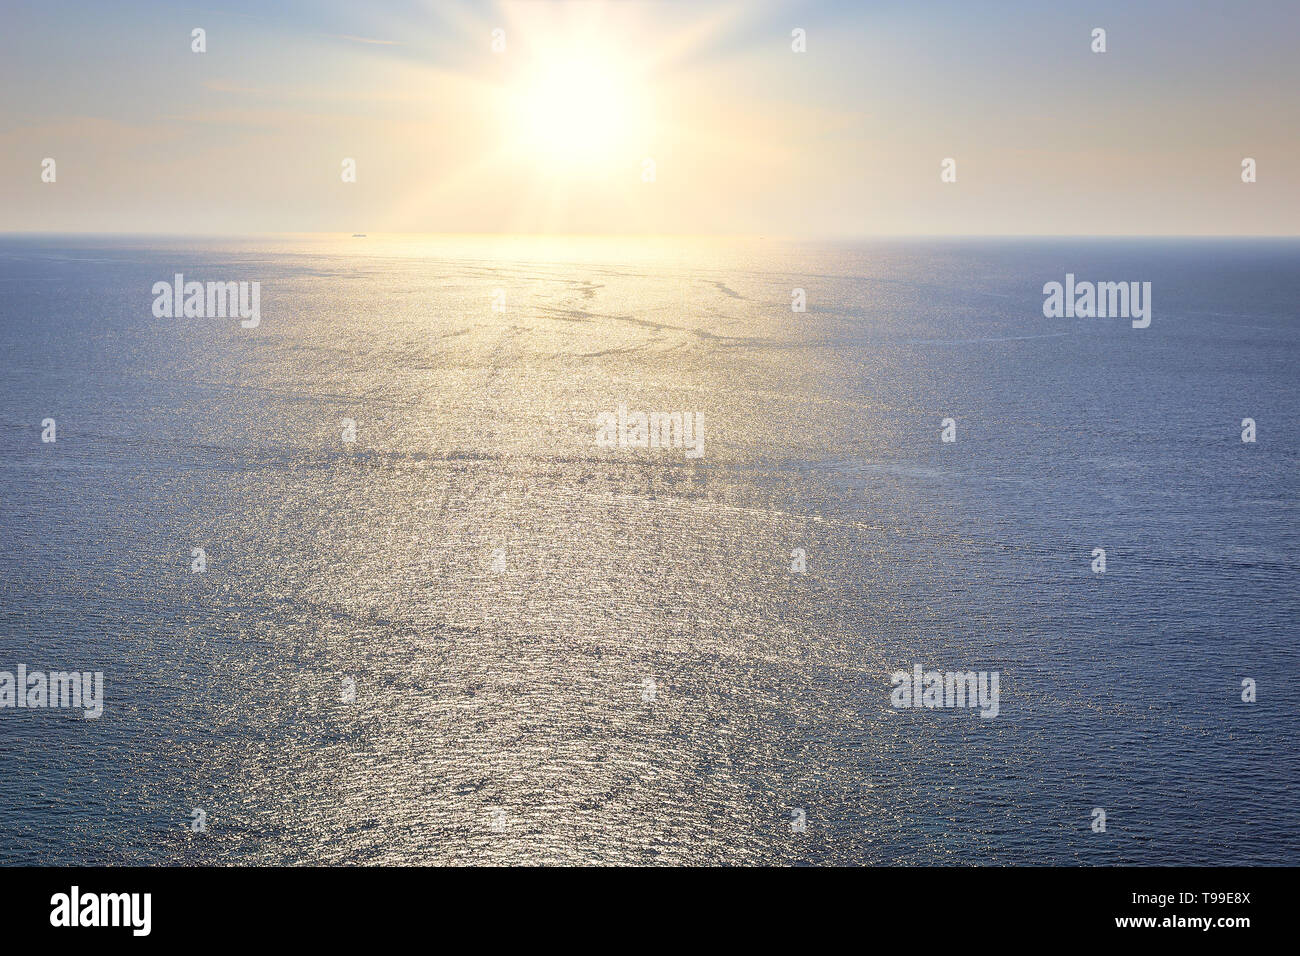 The brilliant sun shines and reflect on the water surface above the sea - Stock Image